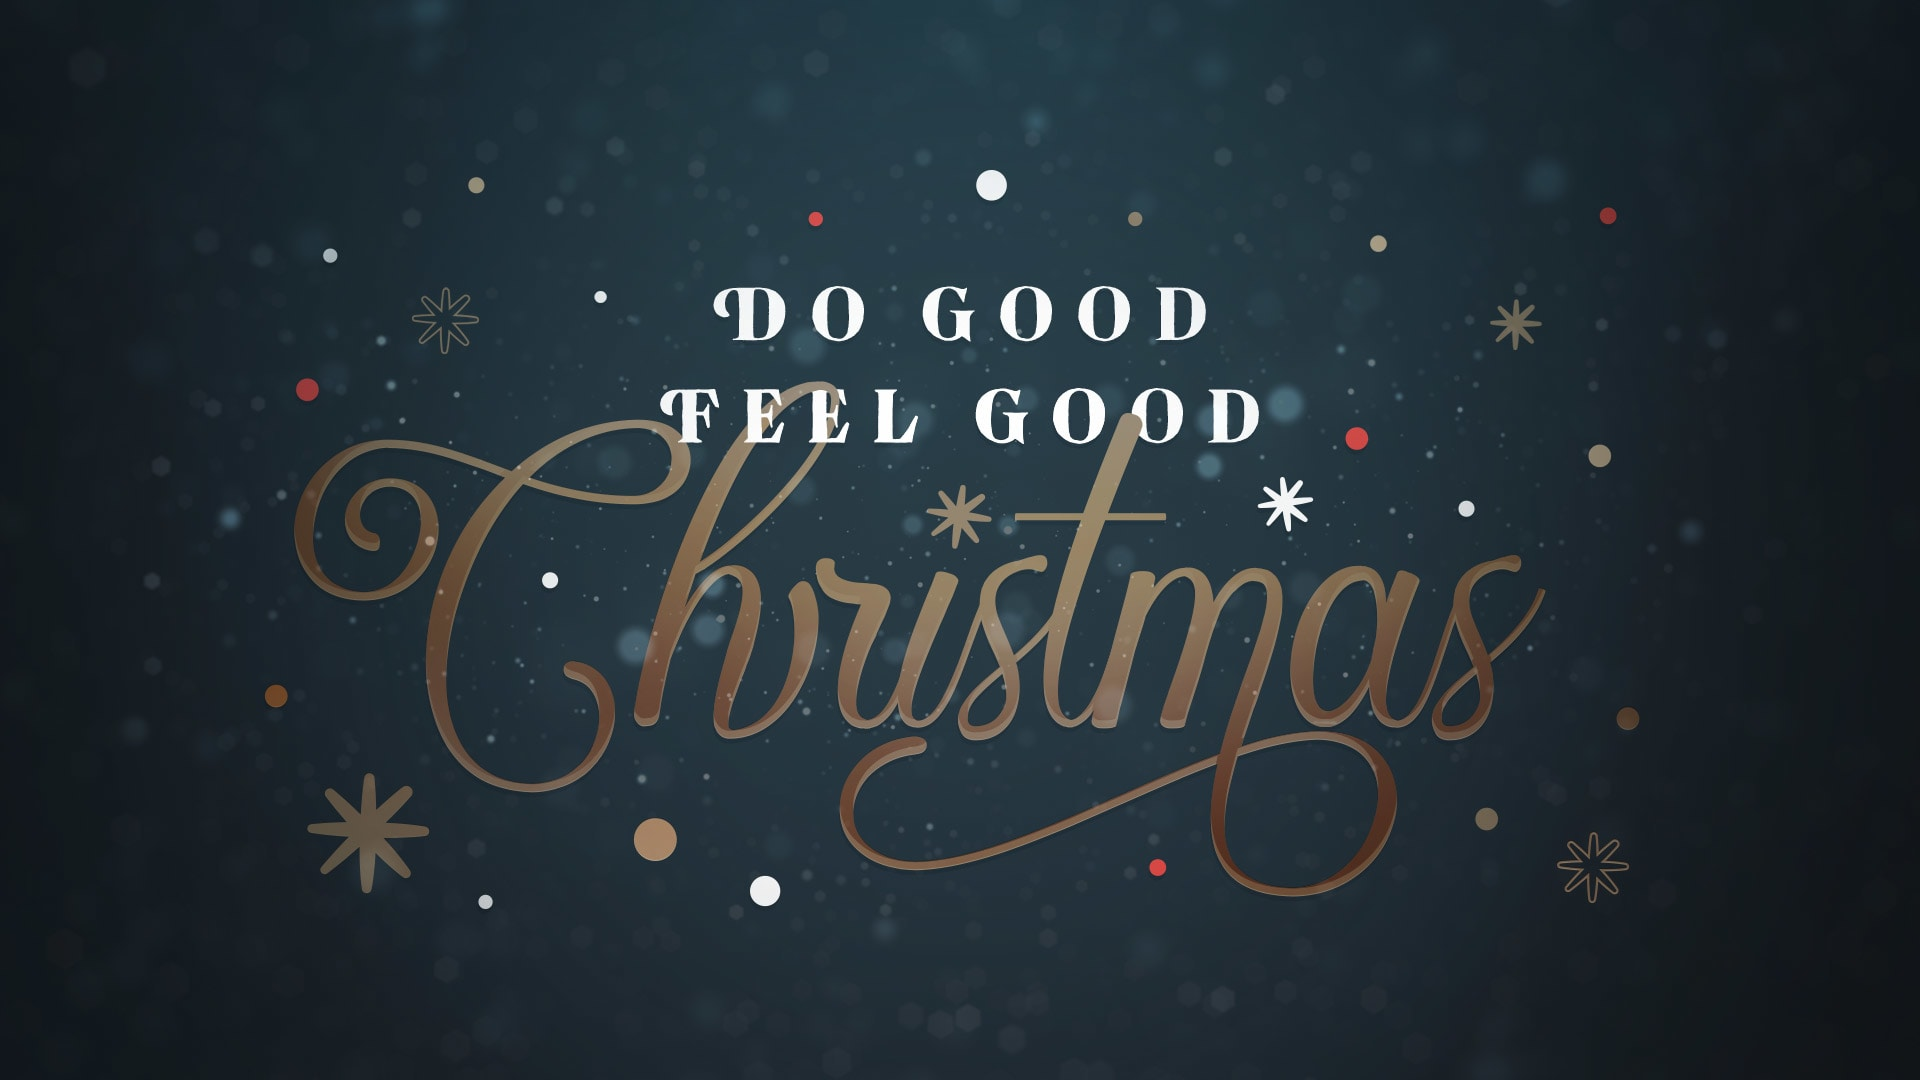 Do Good Feel Good Christmas